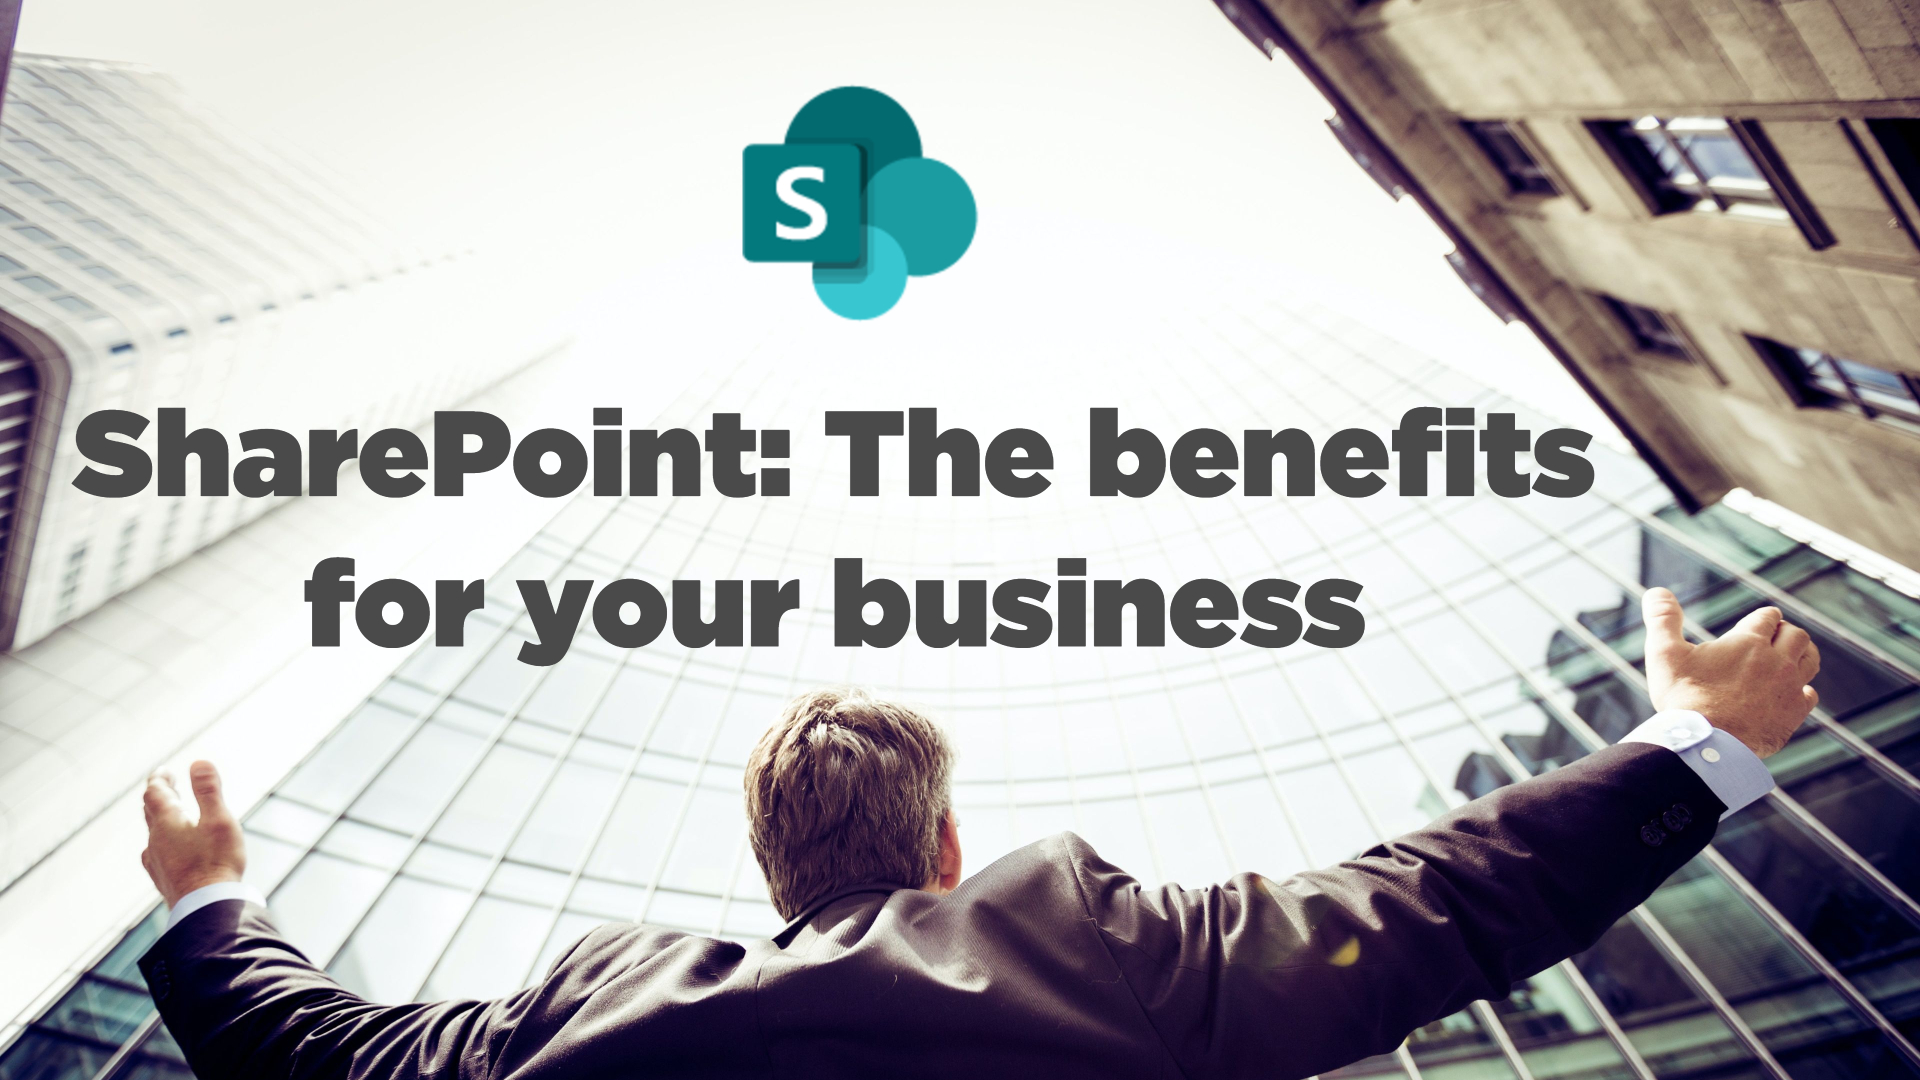 SharePoint: The benefits for your business